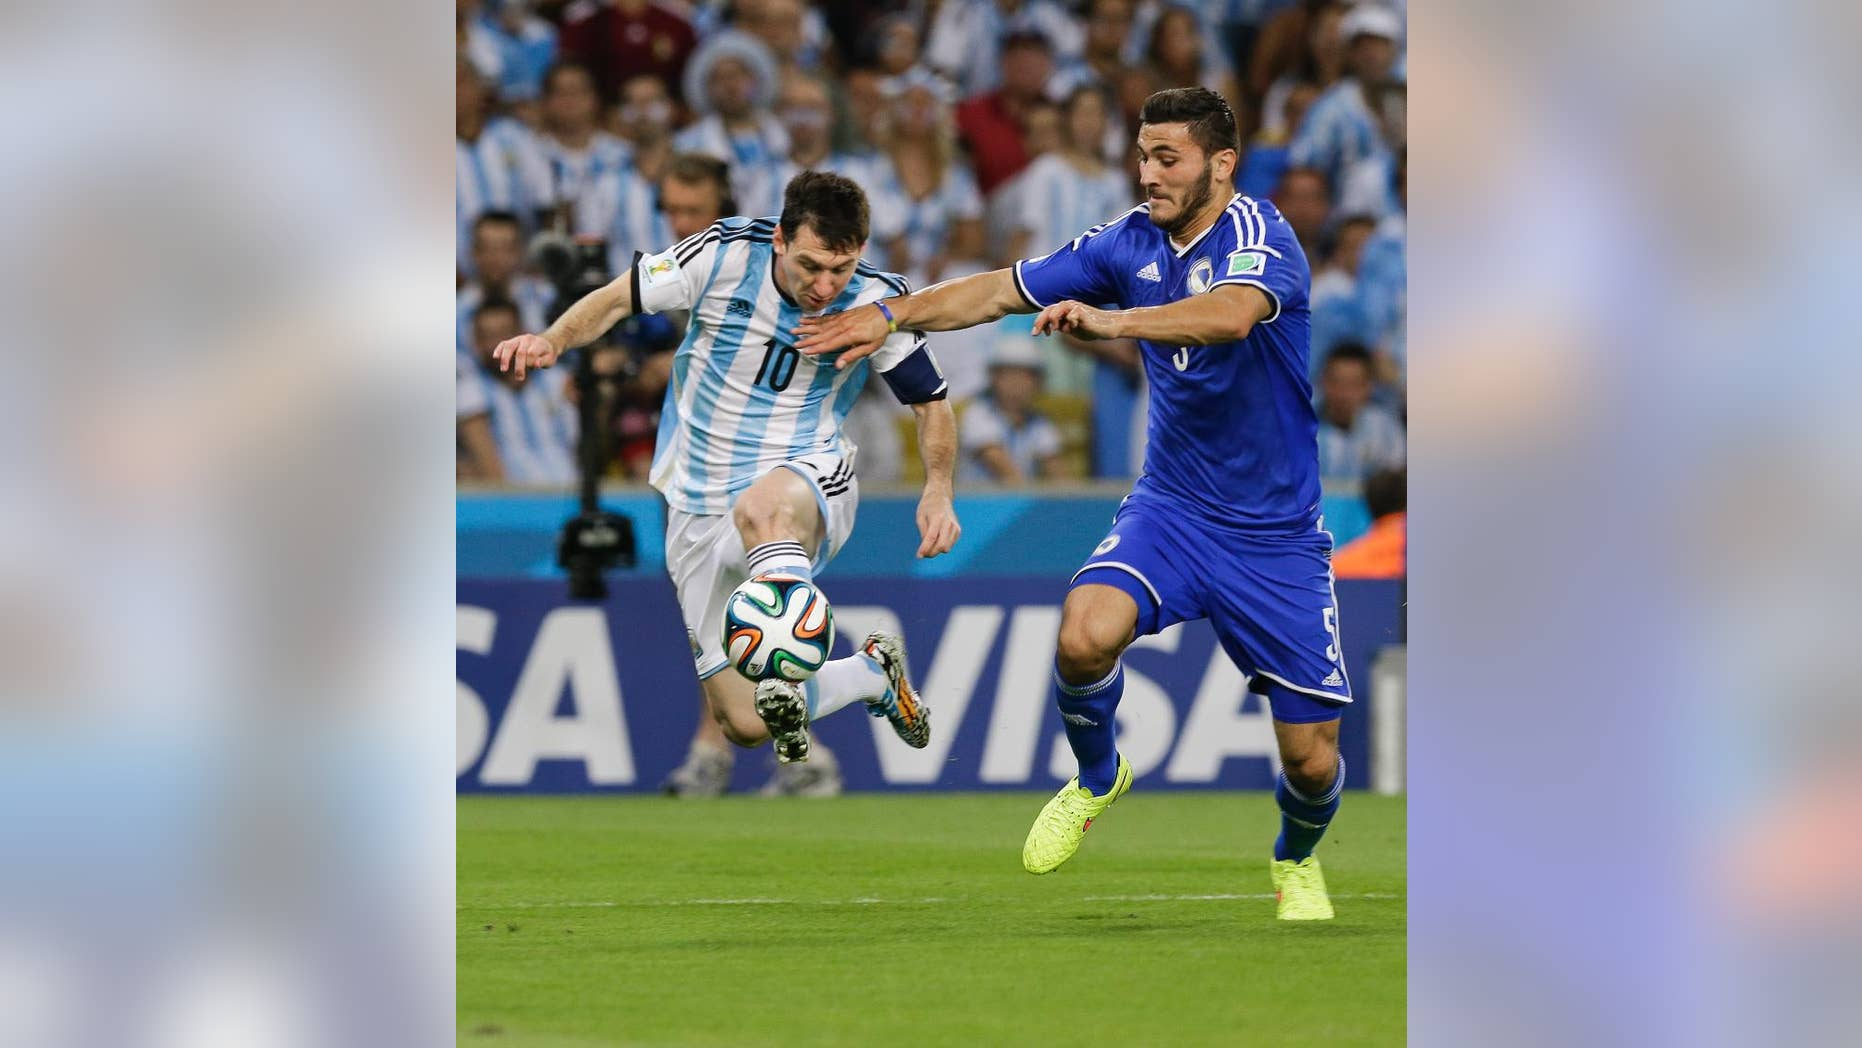 Bosnia's Sead Kolasinac, right, tries to stop Argentina's Lionel Messi (10) during their group F World Cup soccer match at the Maracana Stadium in Rio de Janeiro, Brazil, Sunday, June 15, 2014. (AP Photo/Thanassis Stavrakis)